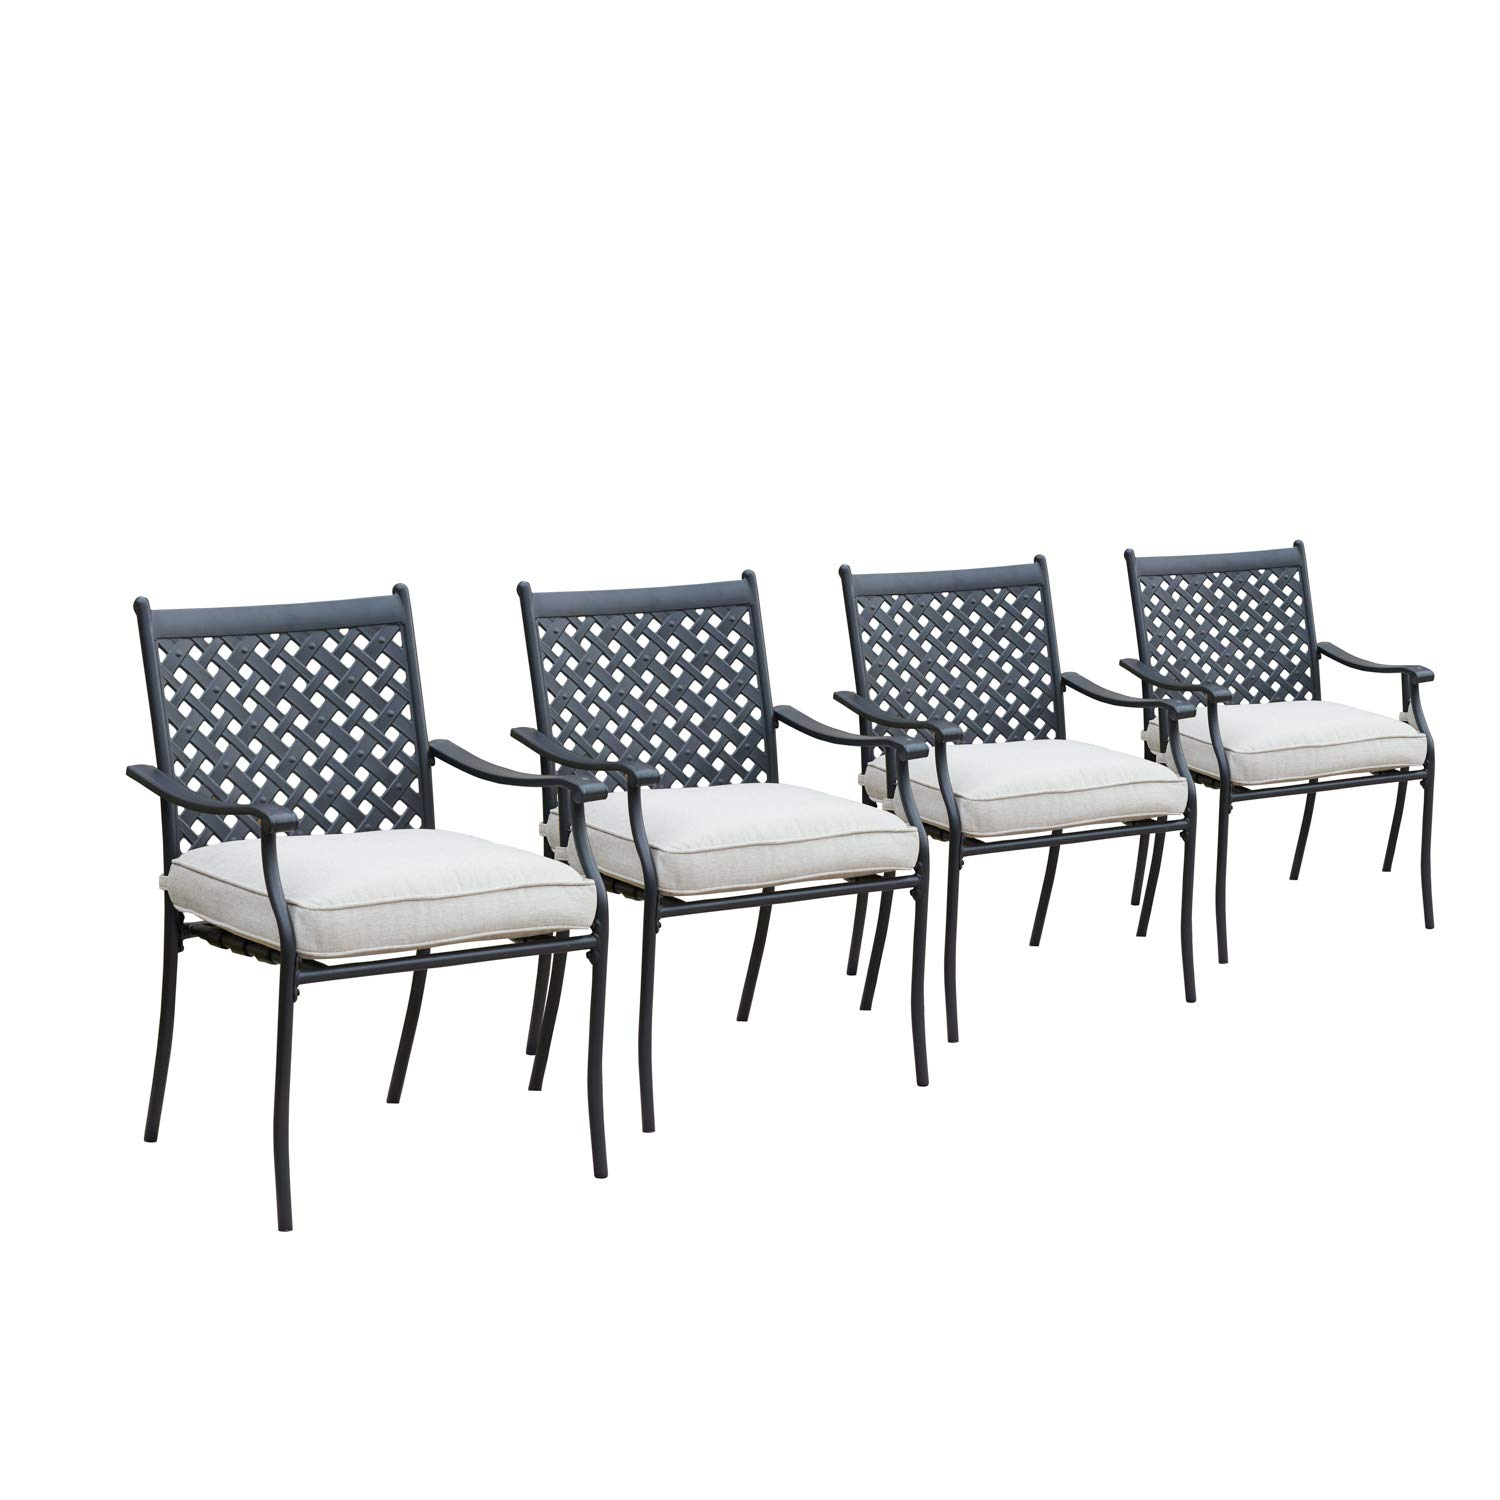 LOKATSE HOME 4 Piece Outdoor Patio Metal Wrought Iron Dining Chair Set with Arms and Seat Cushions, White by LOKATSE HOME